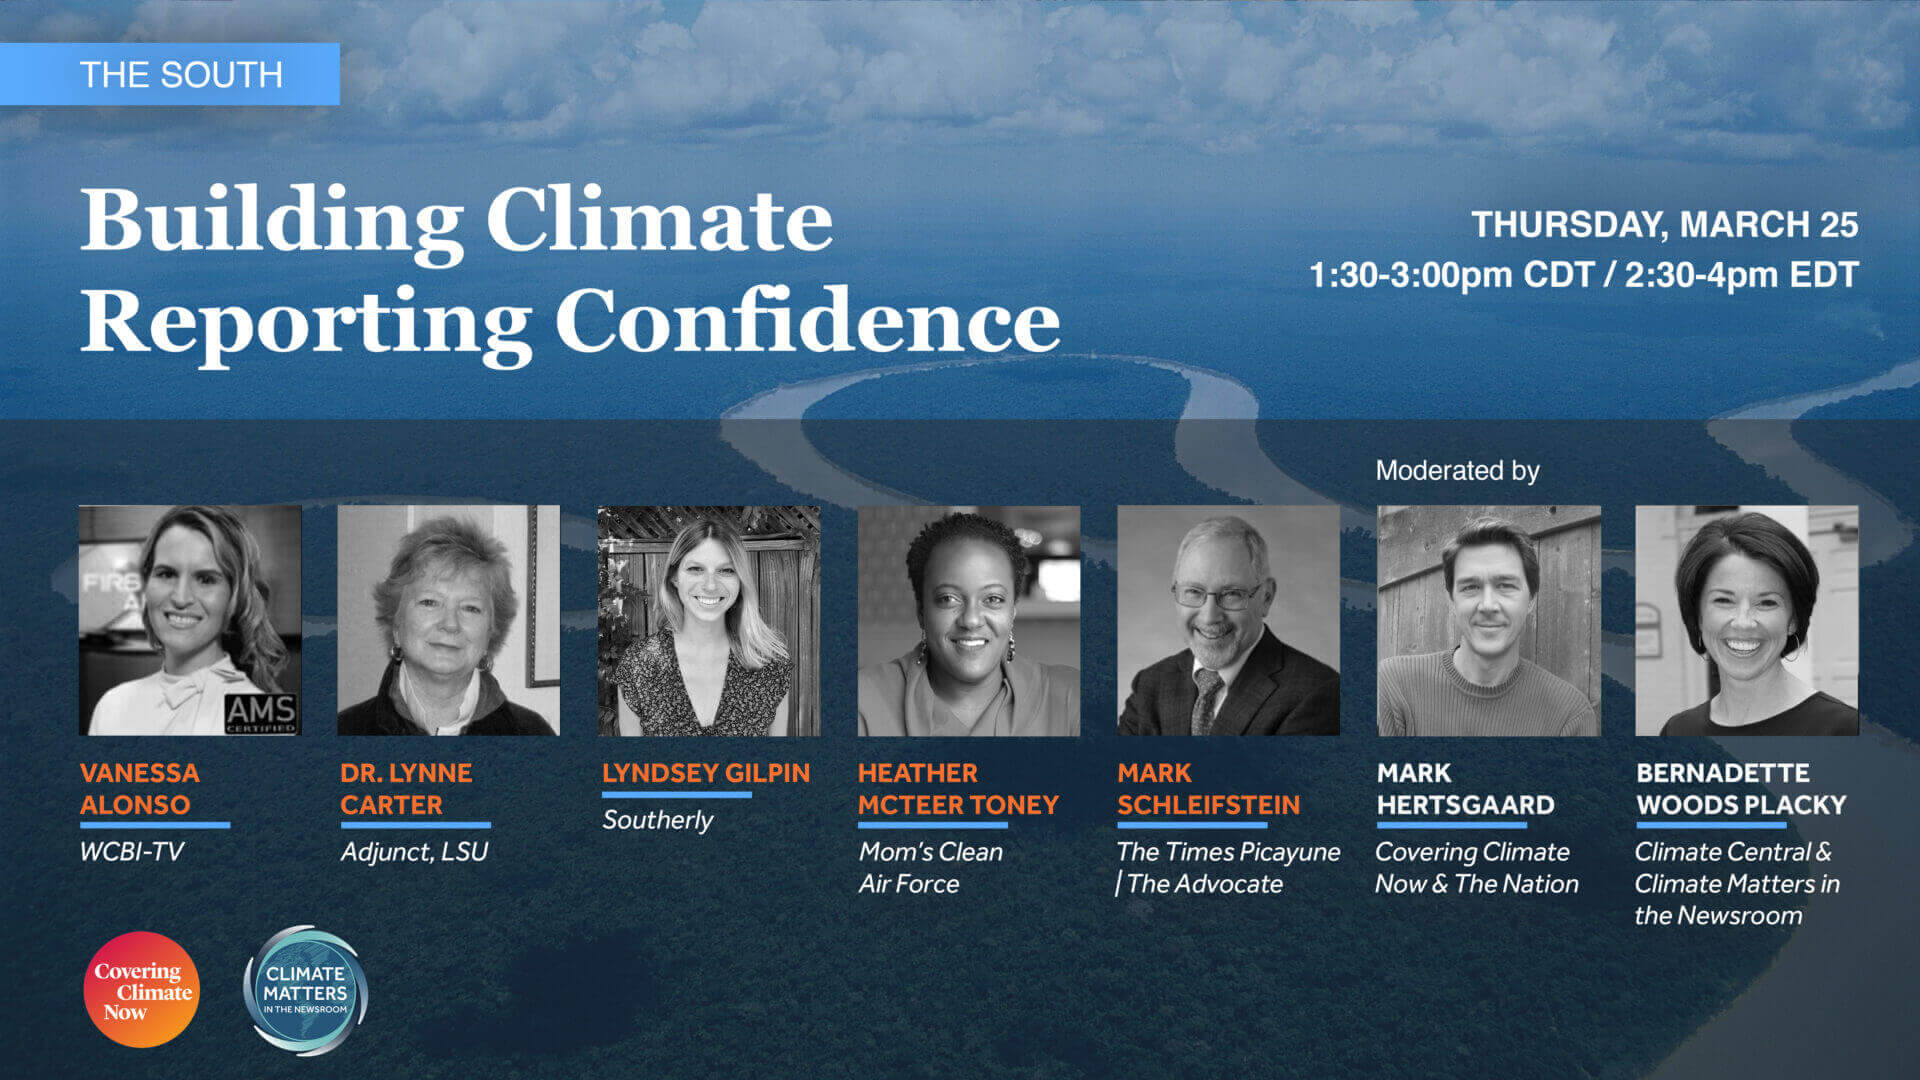 INVITE Building Climate Confidence: The South